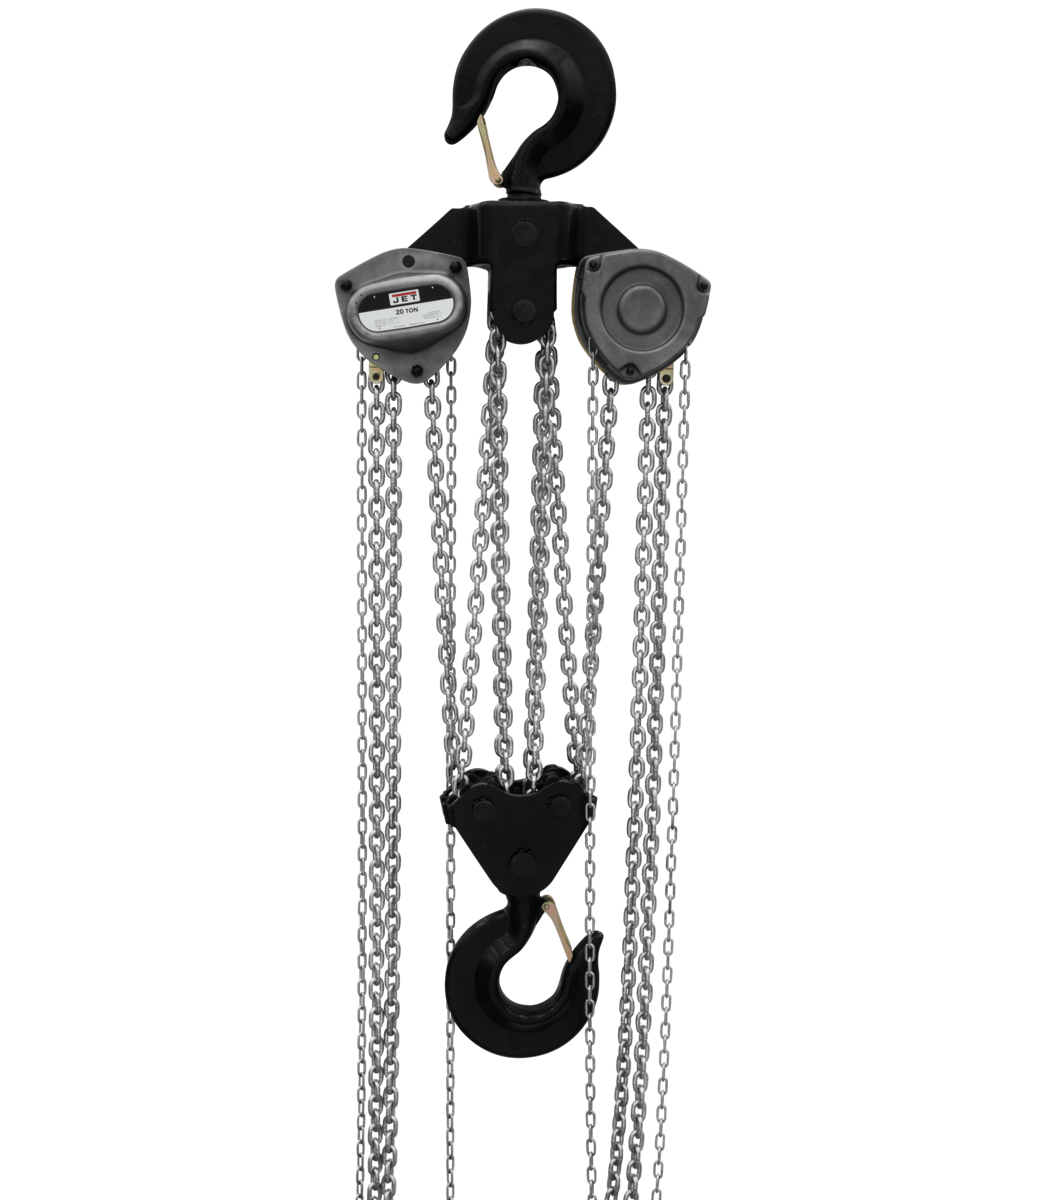 L-100-2000WO-15, 20-Ton Hand Chain Hoist With 15' Lift & Overload Protection